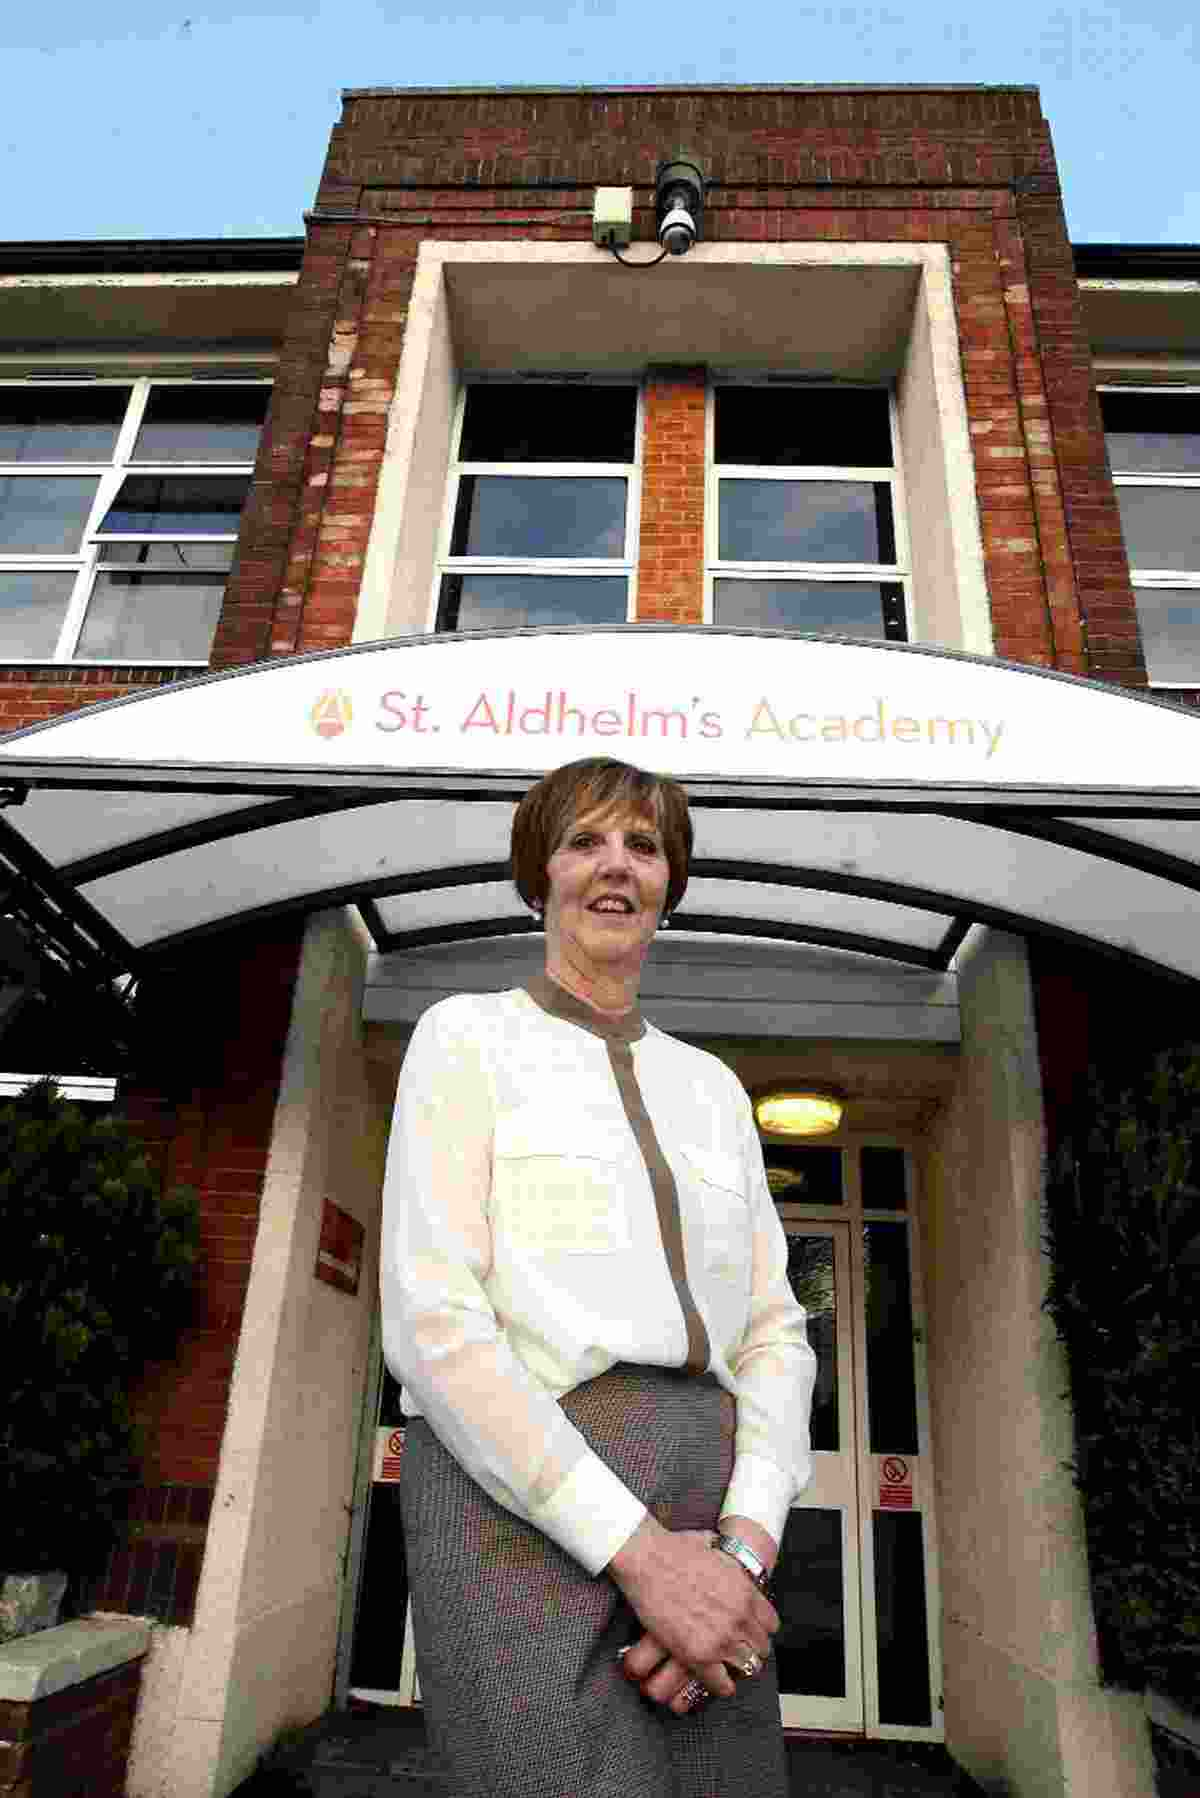 Head teacher of troubled St Aldhelm's Academy quits post